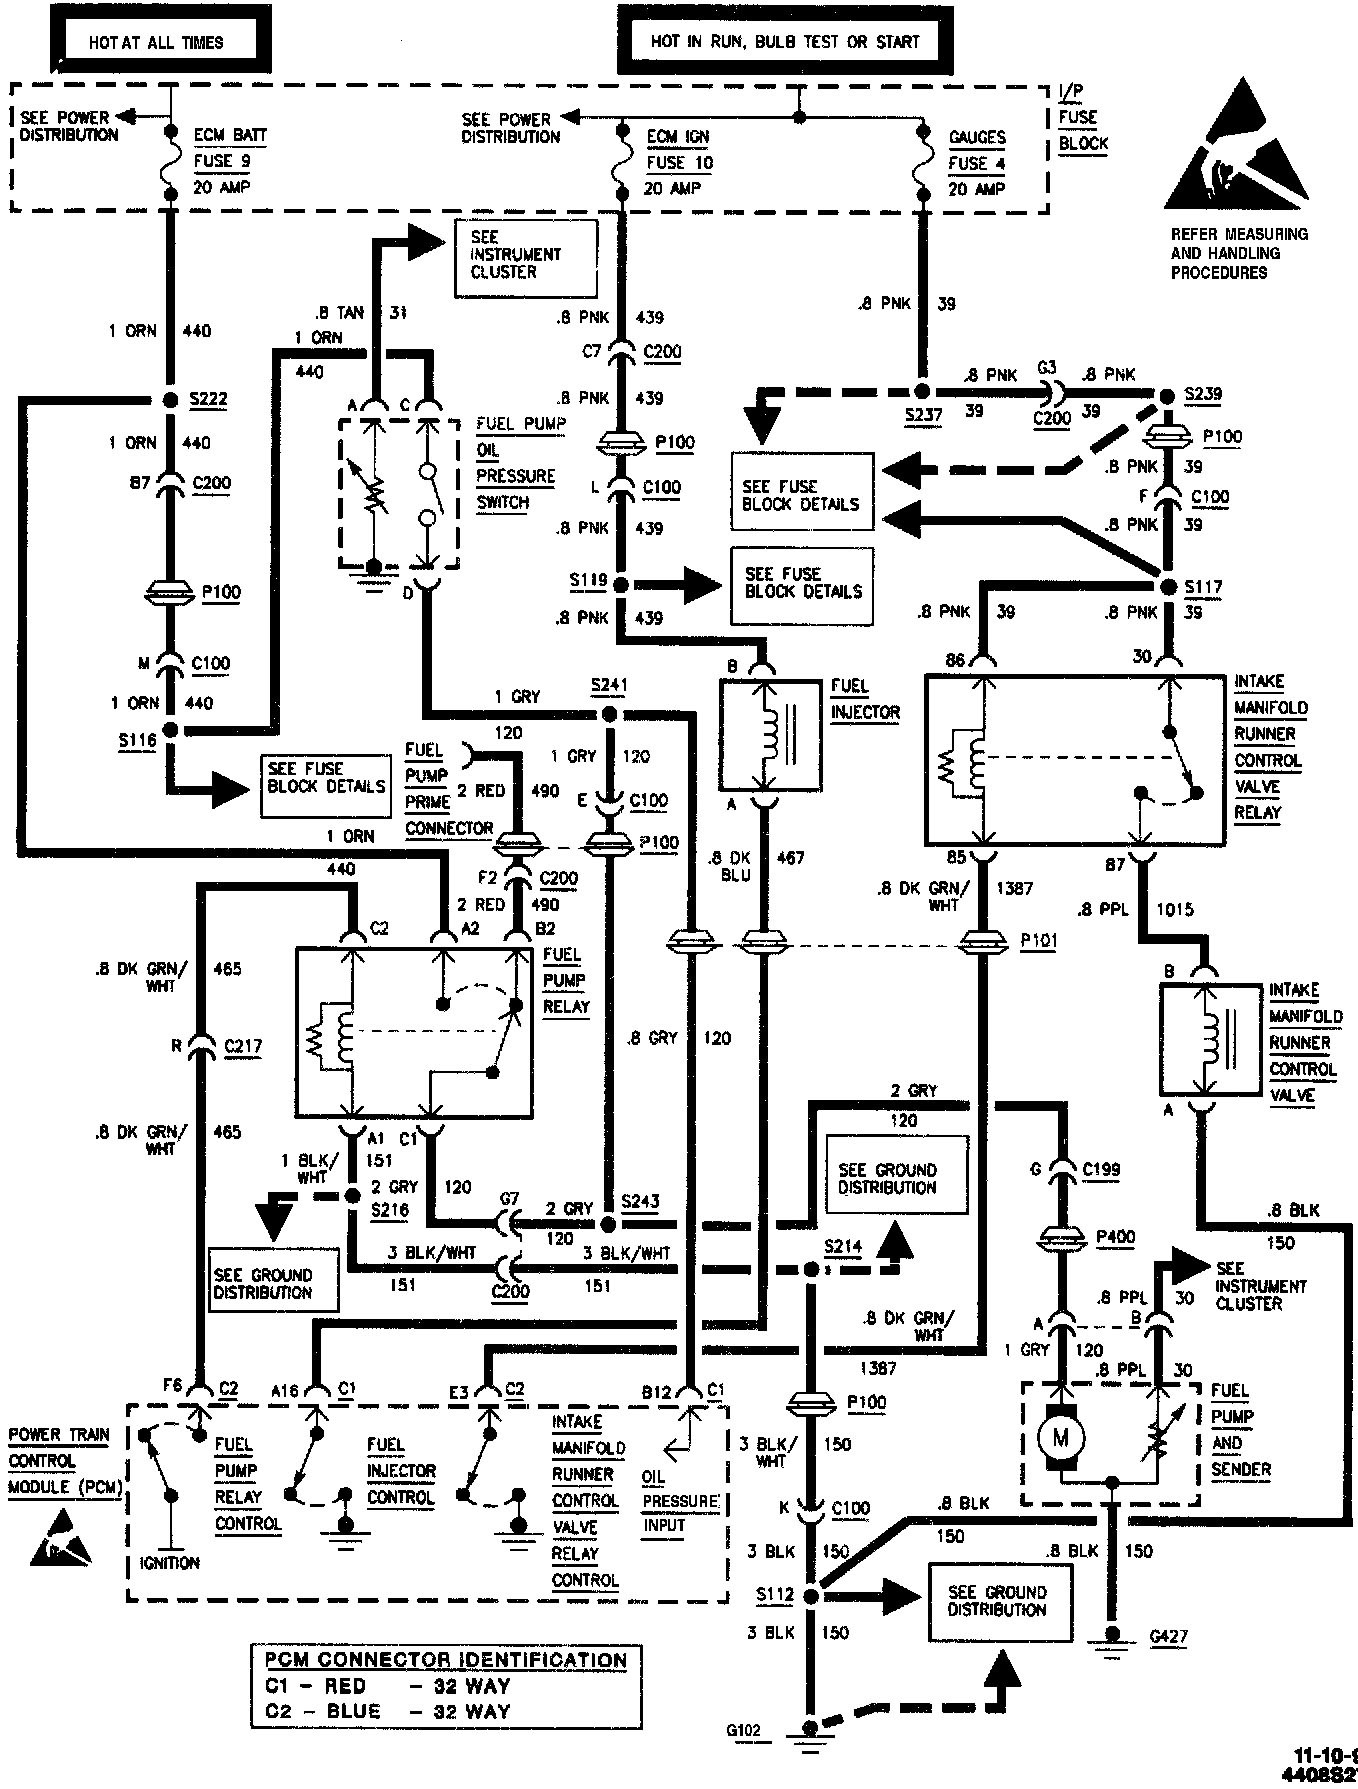 mack truck battery wiring diagram mack radio wiring - auto electrical wiring diagram mack ds600 headlight wiring diagram